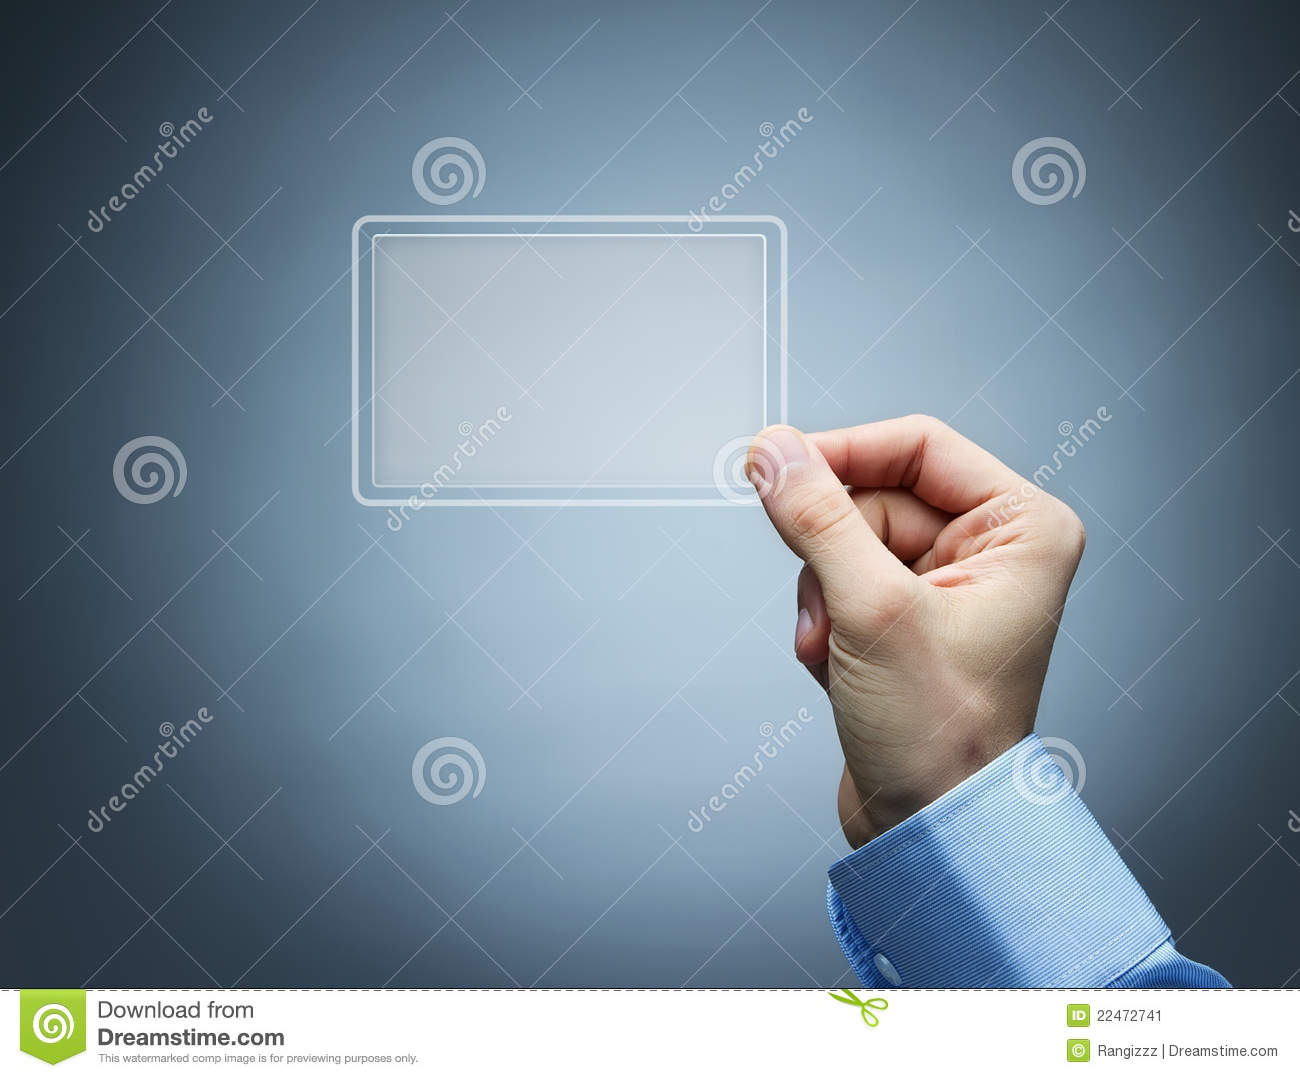 Futuristic Business Card With Copy Space Stock Image Image Of Hand